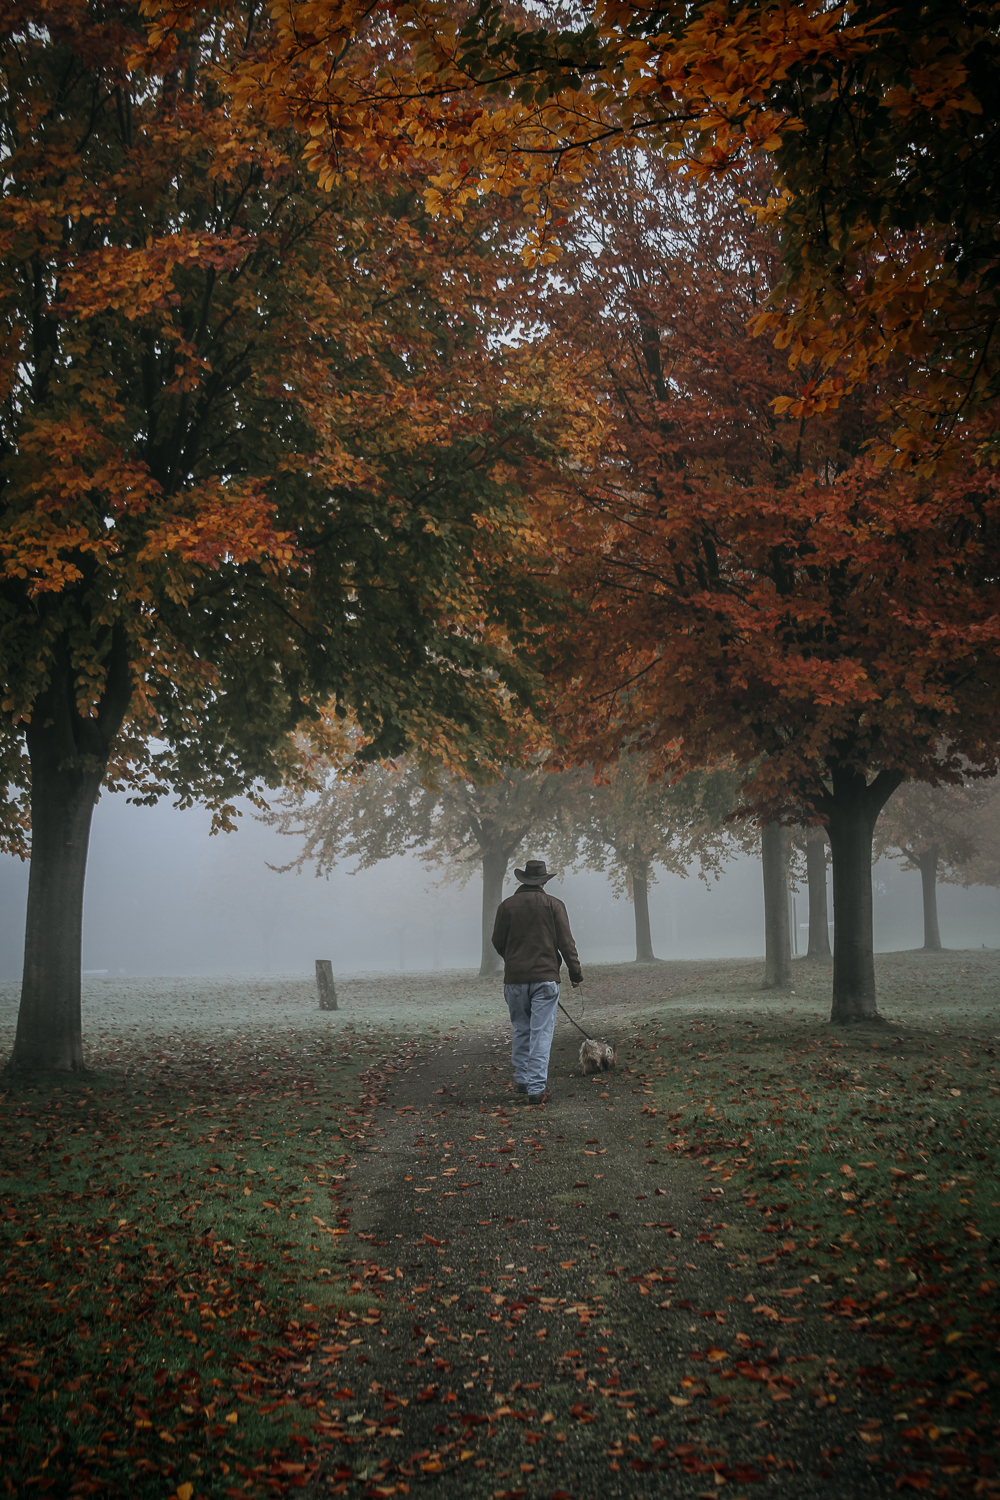 Walking To The Foggy Morning